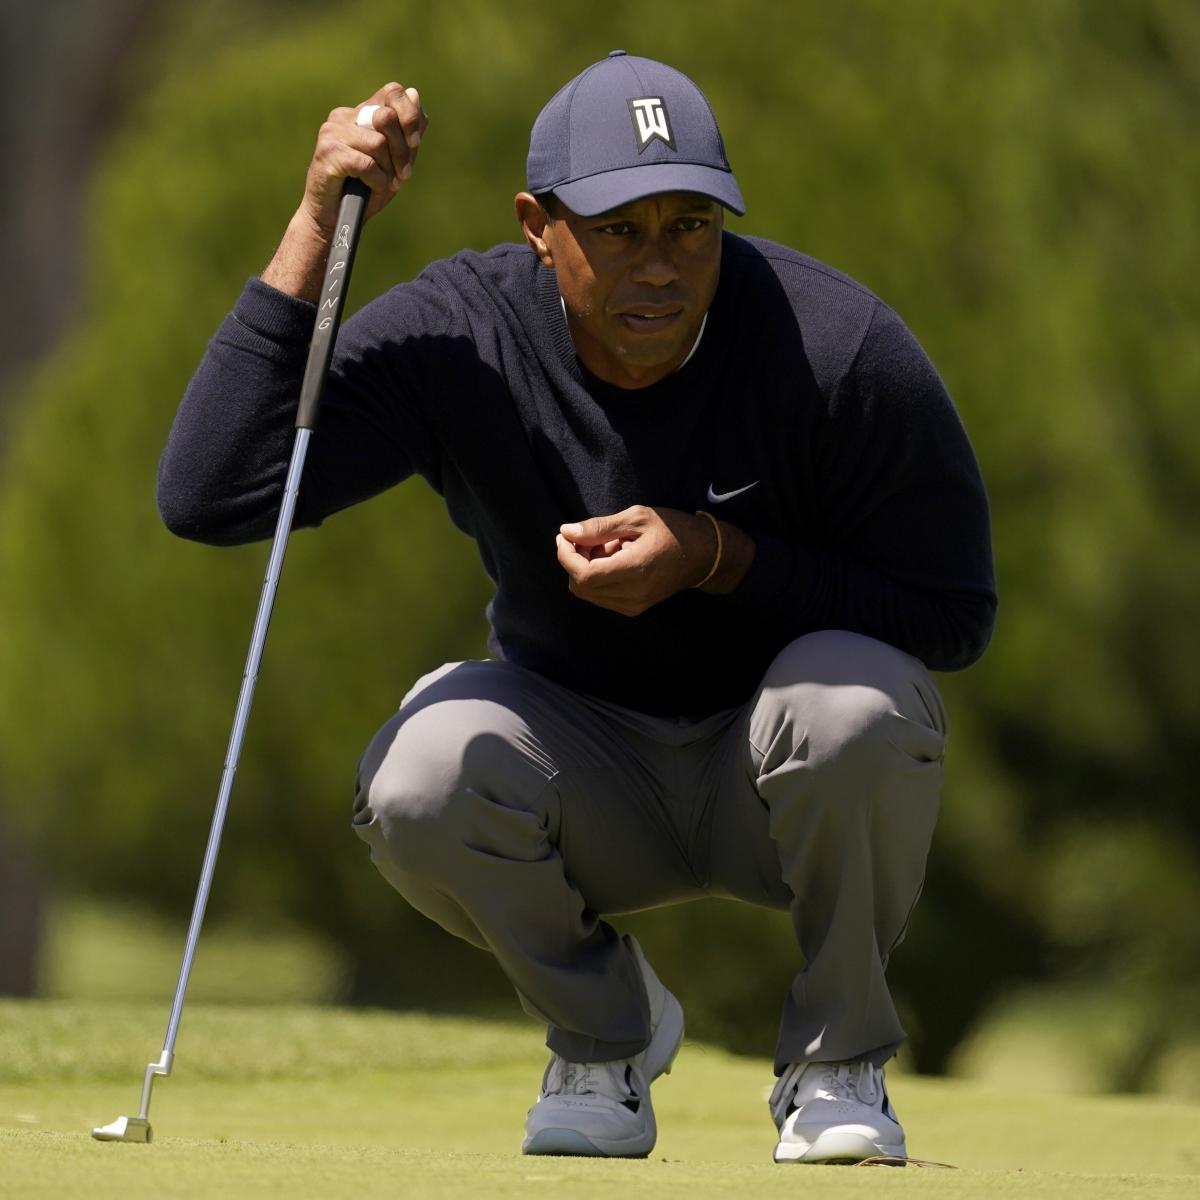 Tiger Woods Shoots 3 Under Delivers Strong 4th Round at 2020 PGA Championship – Bleacher Report